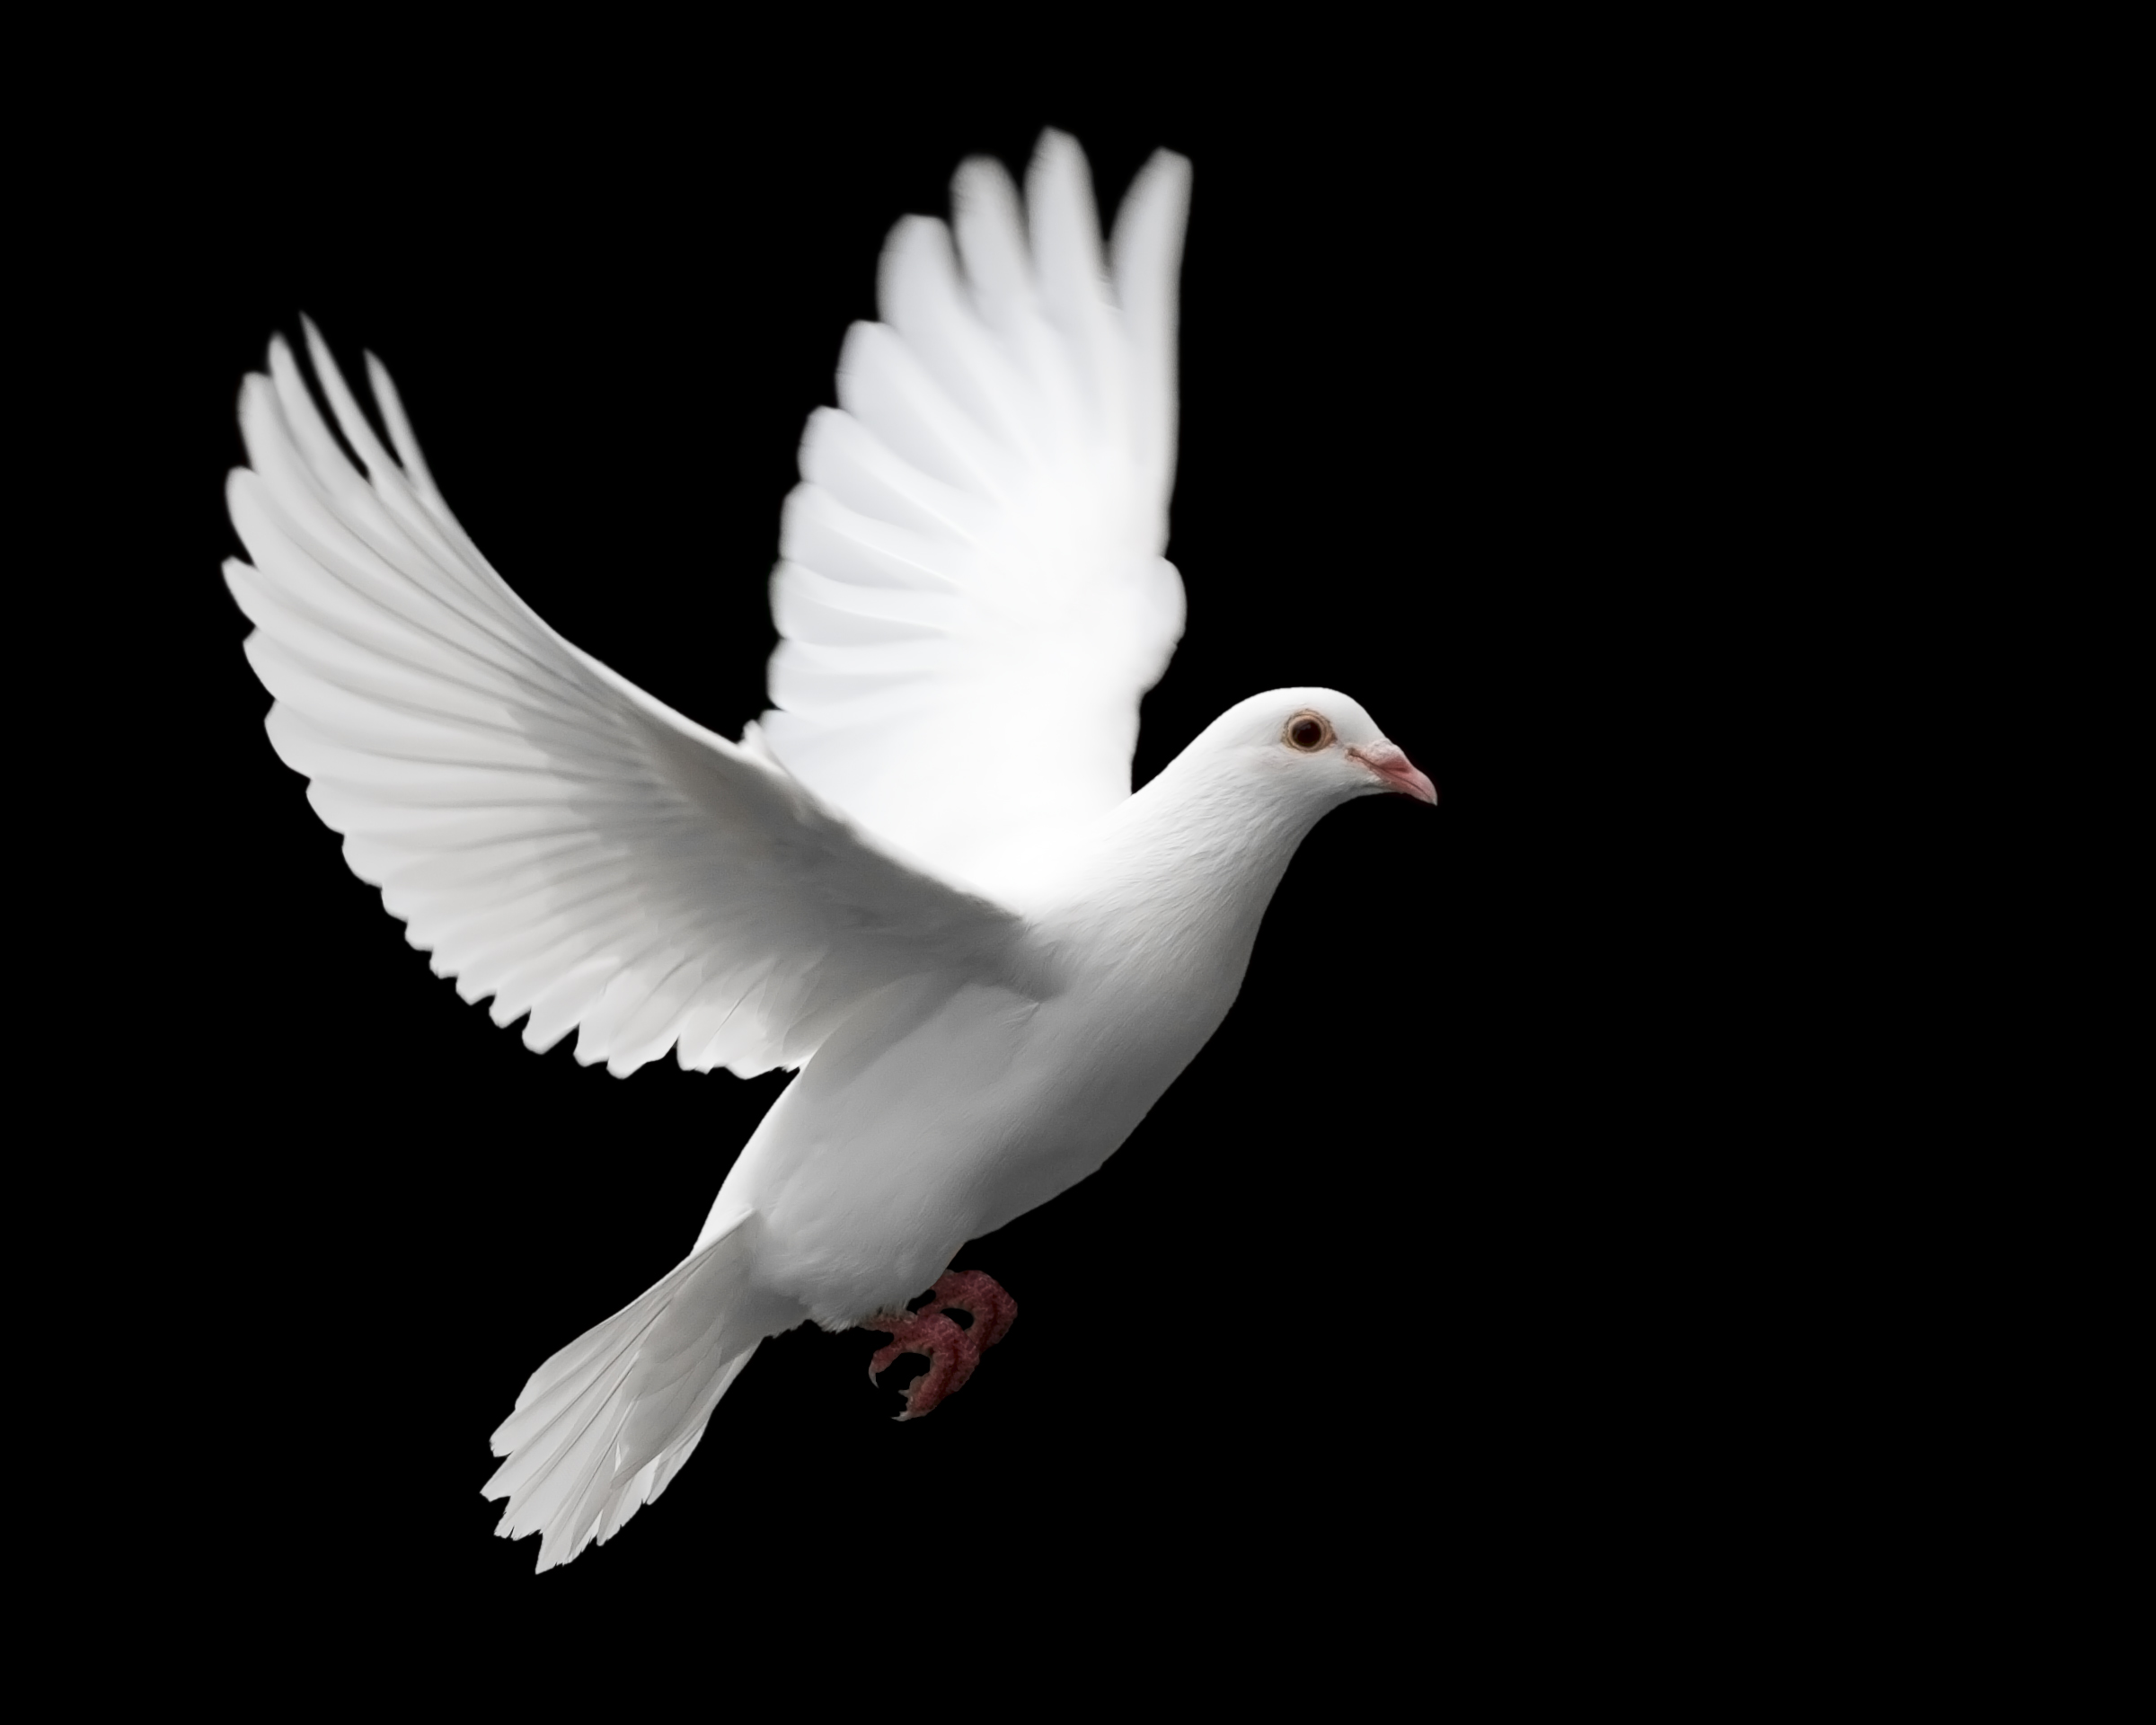 Pigeon clipart small dove. Flying free images at